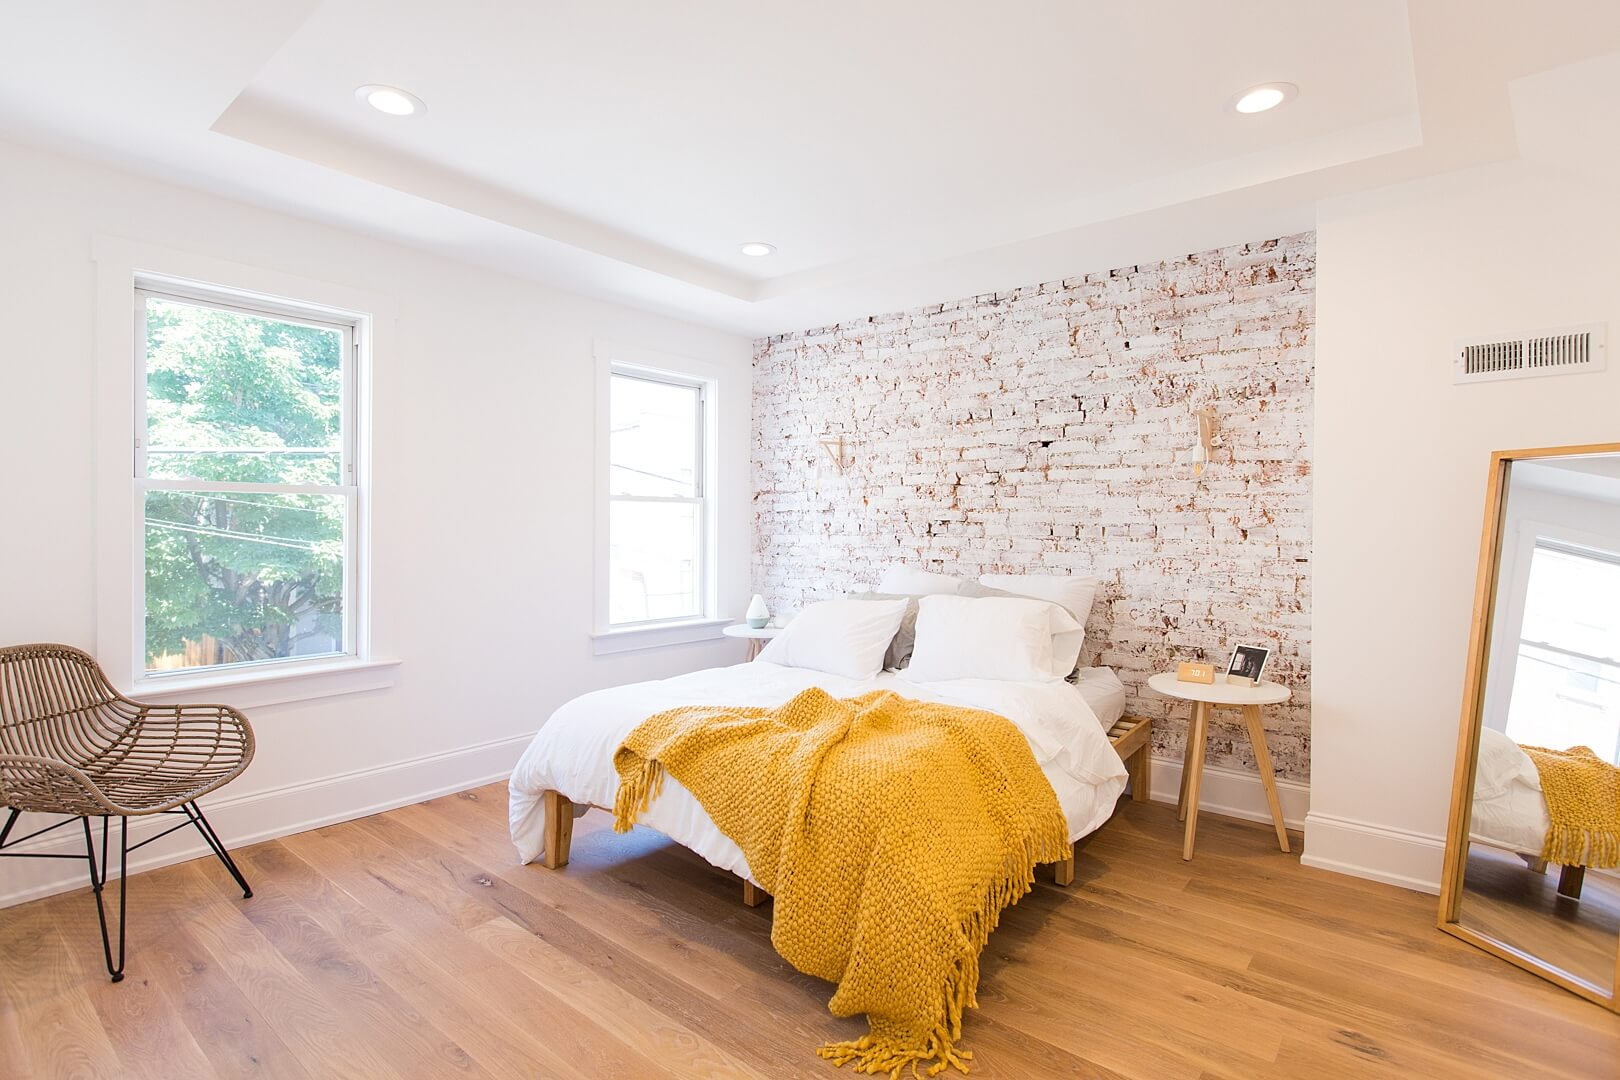 Bedroom with hardwood flooring, bed and brick accent wall.